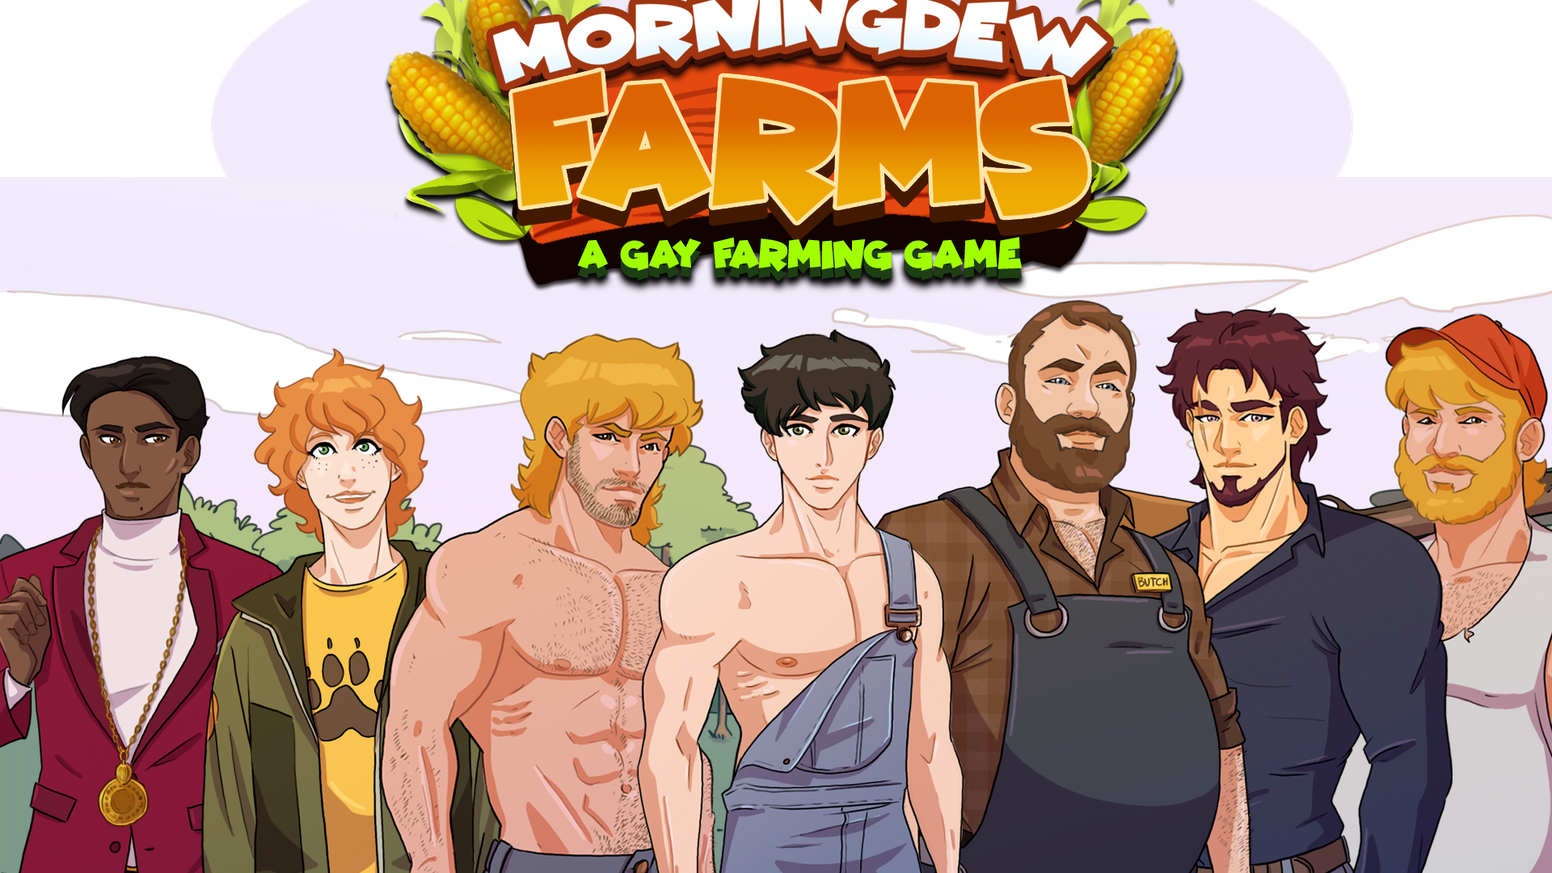 Sweet Southerner Cody finally realizes his dream of starting a farm in the Gayborhood of Morningdew! Fun farming and hot loving-Yeehaw!